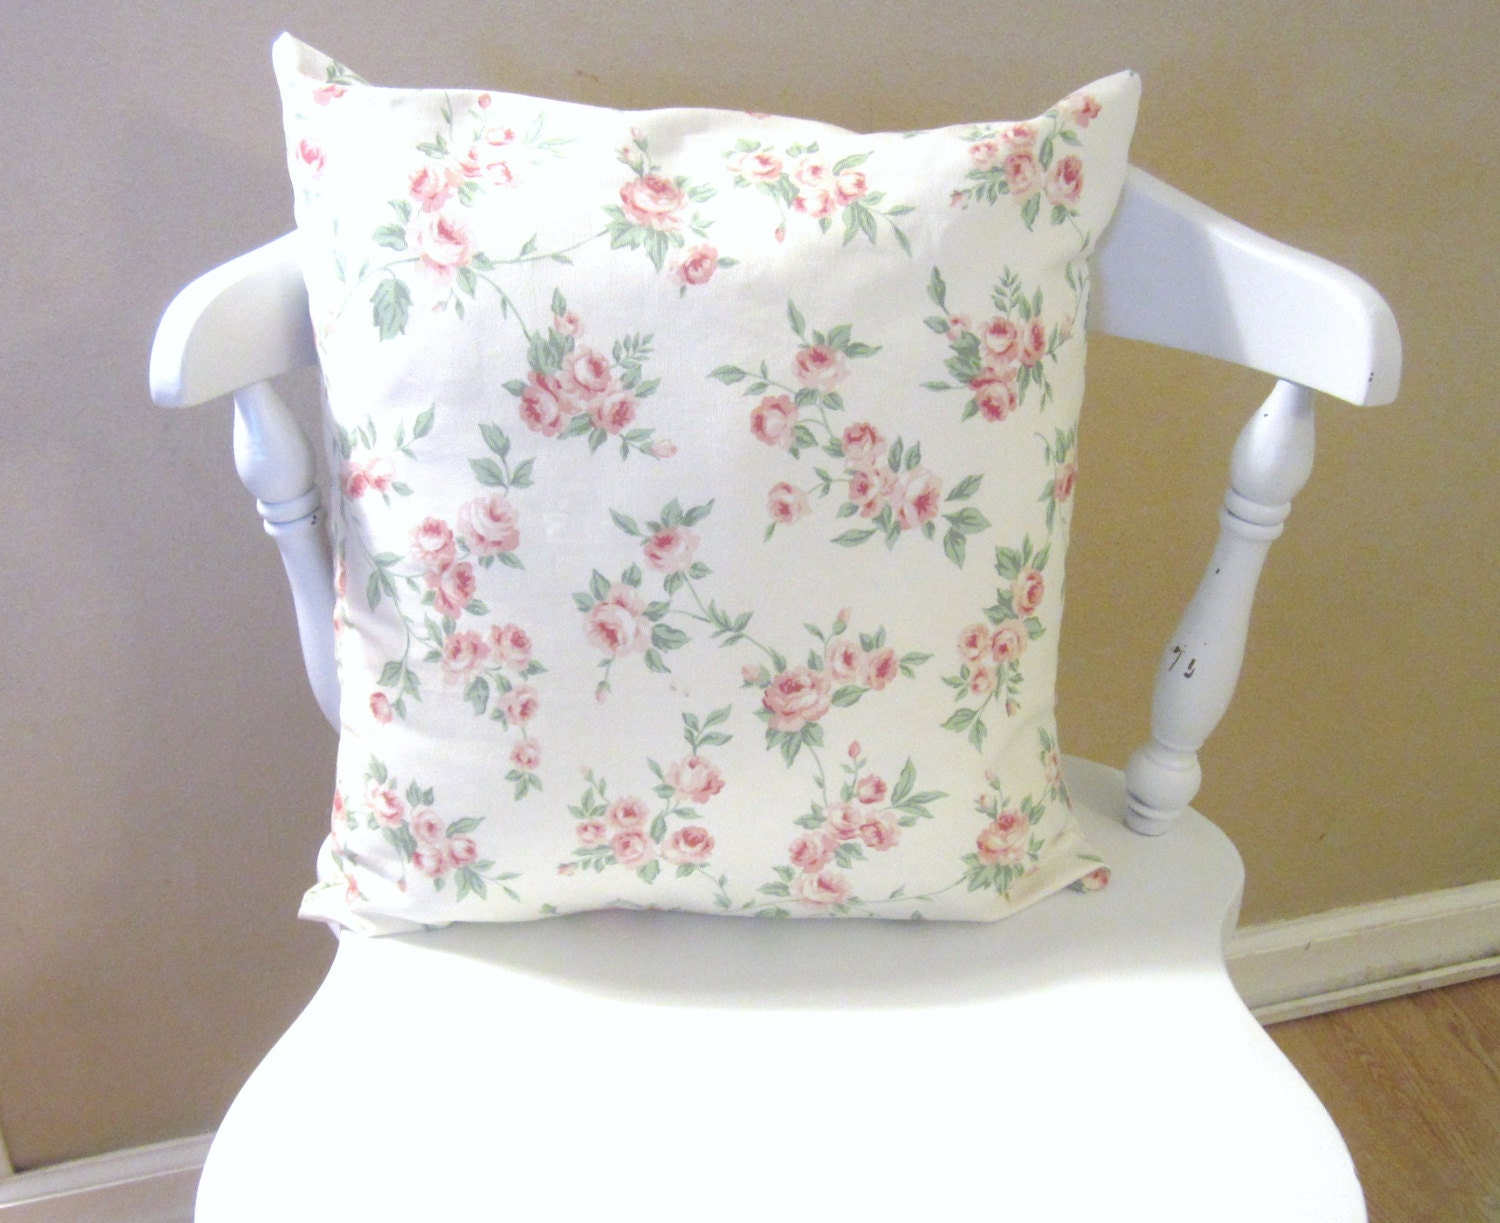 Shabby Chic Decorative Pillows : Shabby Chic Rose Canvas Pillow Cover/ Throw pillow Cover/